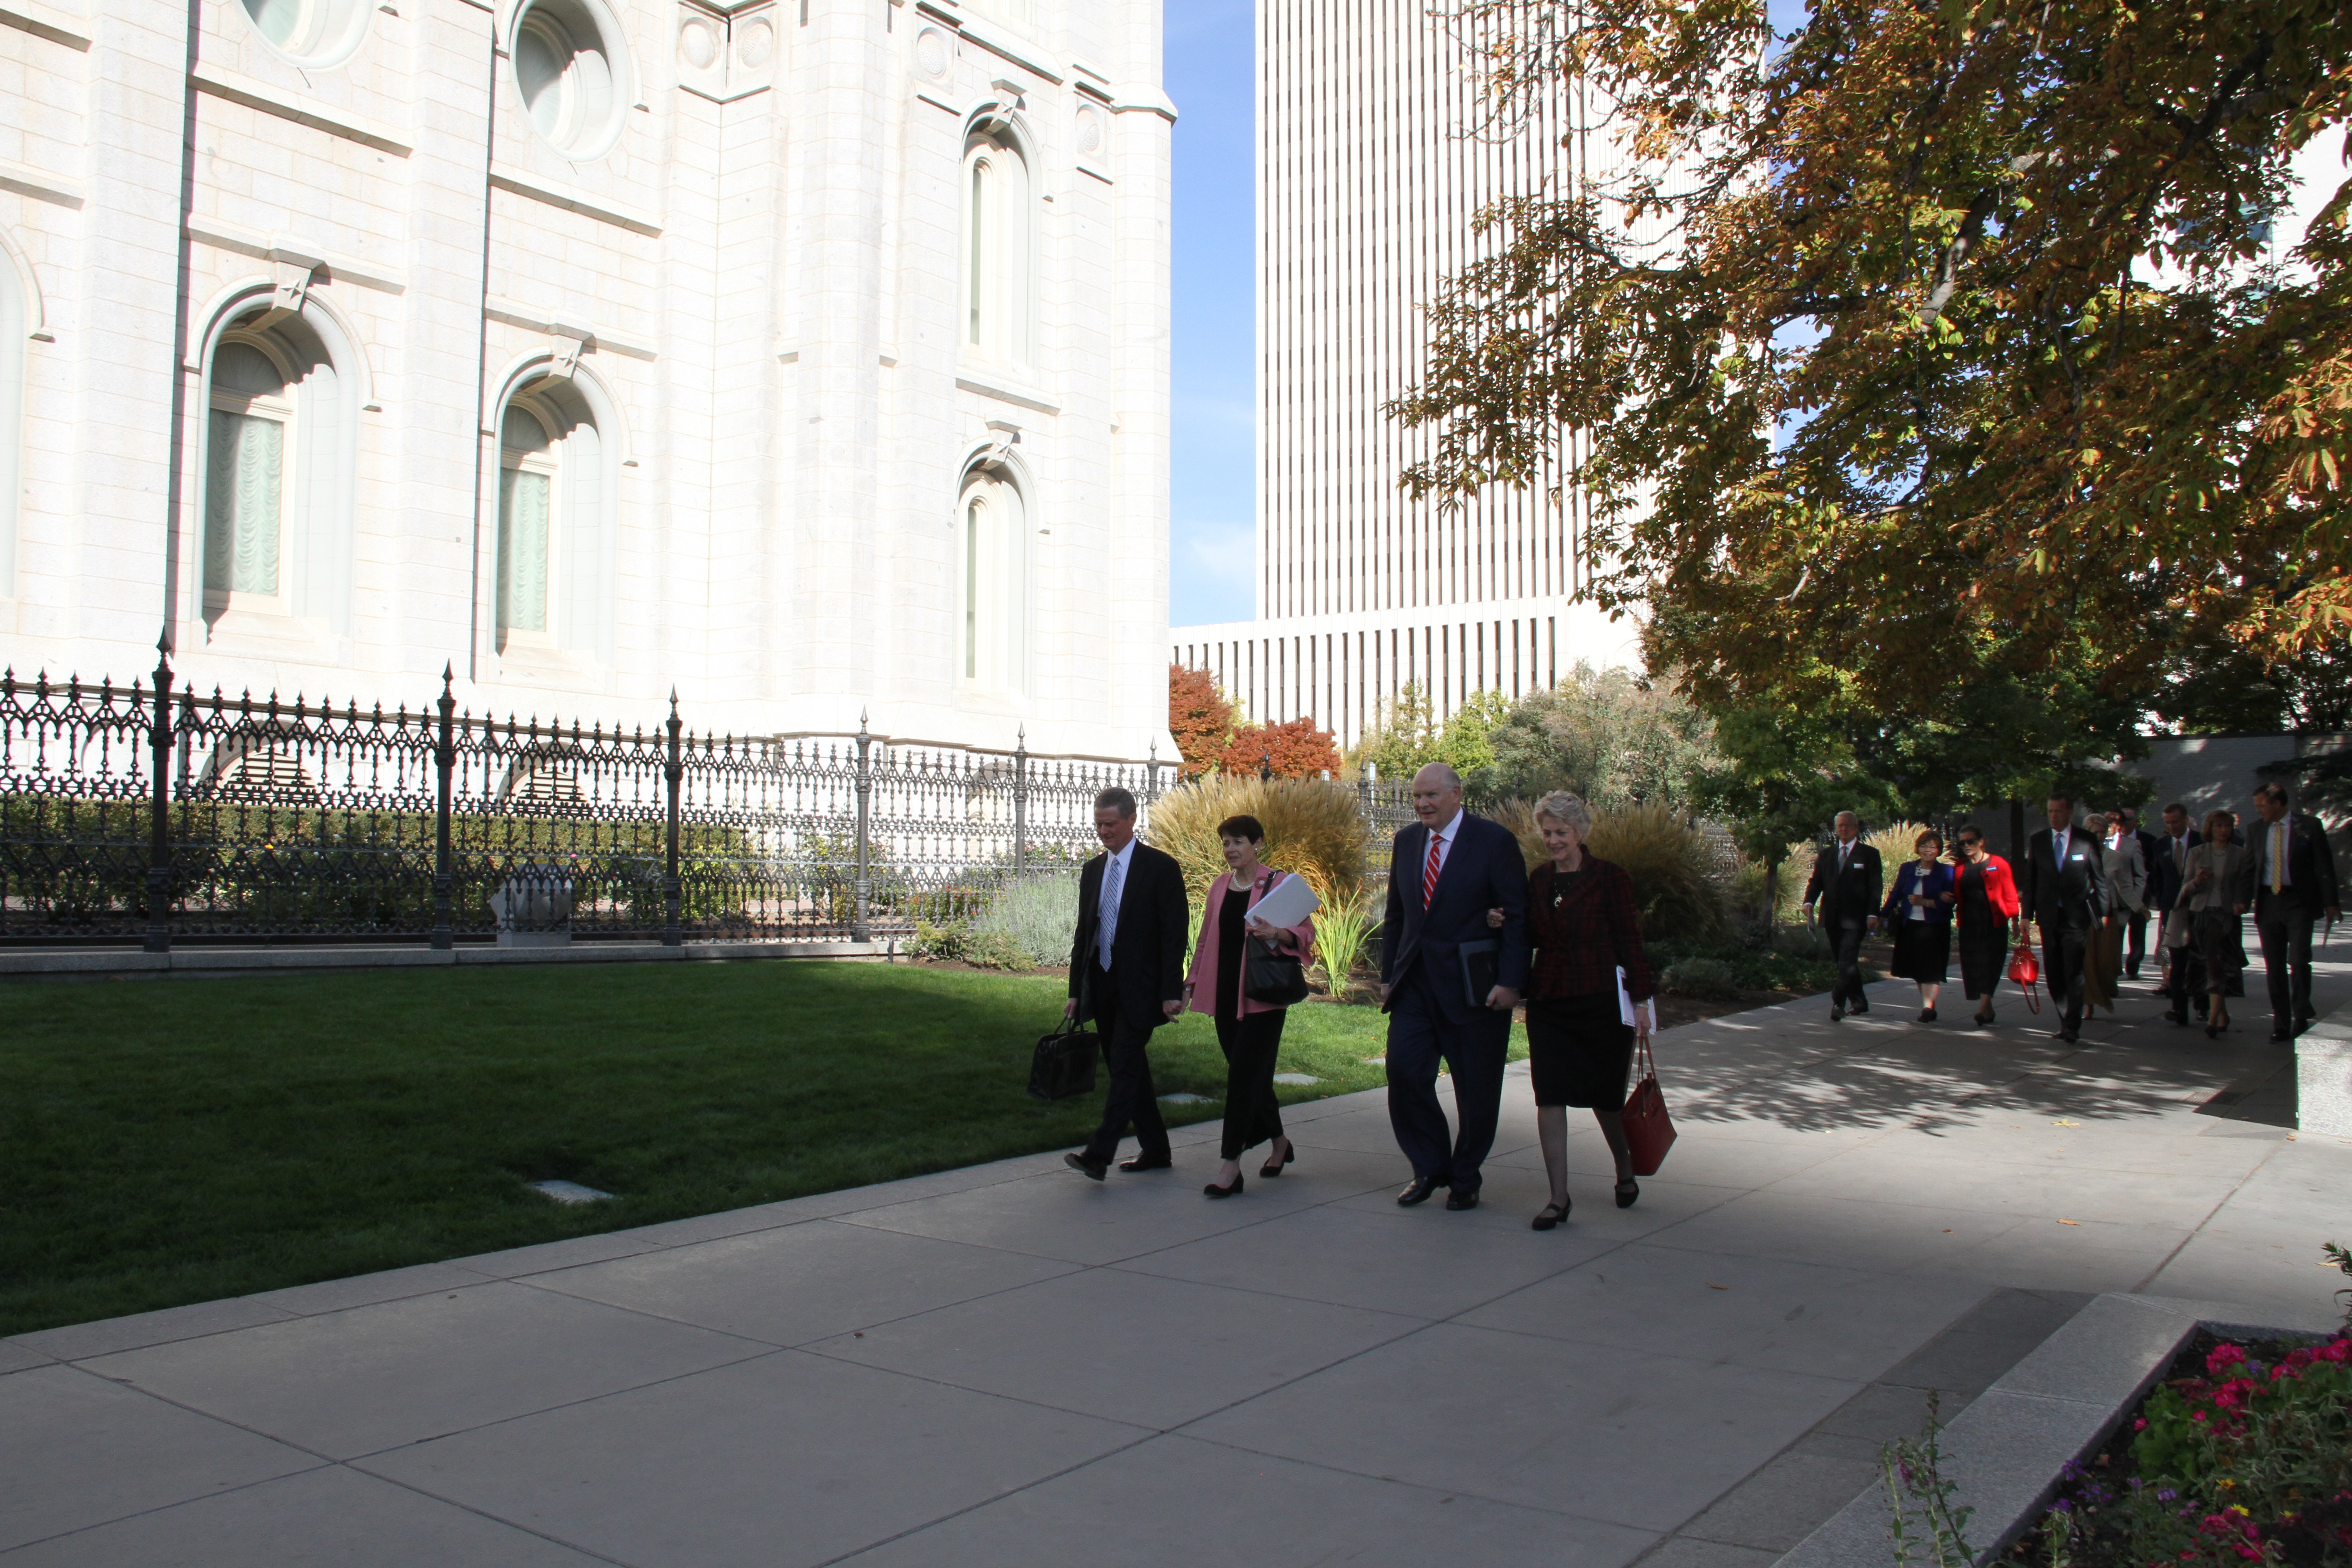 From left, Elder David A. Bednar, Sister Susan Bednar, Elder Dale G. Renlund and Sister Ruth Renlund walk along Temple Square, leading a group of 63 couples of newly called temple presidents and matrons attending the 2019 Temple Leadership Seminar Oct. 14-17 in Salt Lake City, Utah.